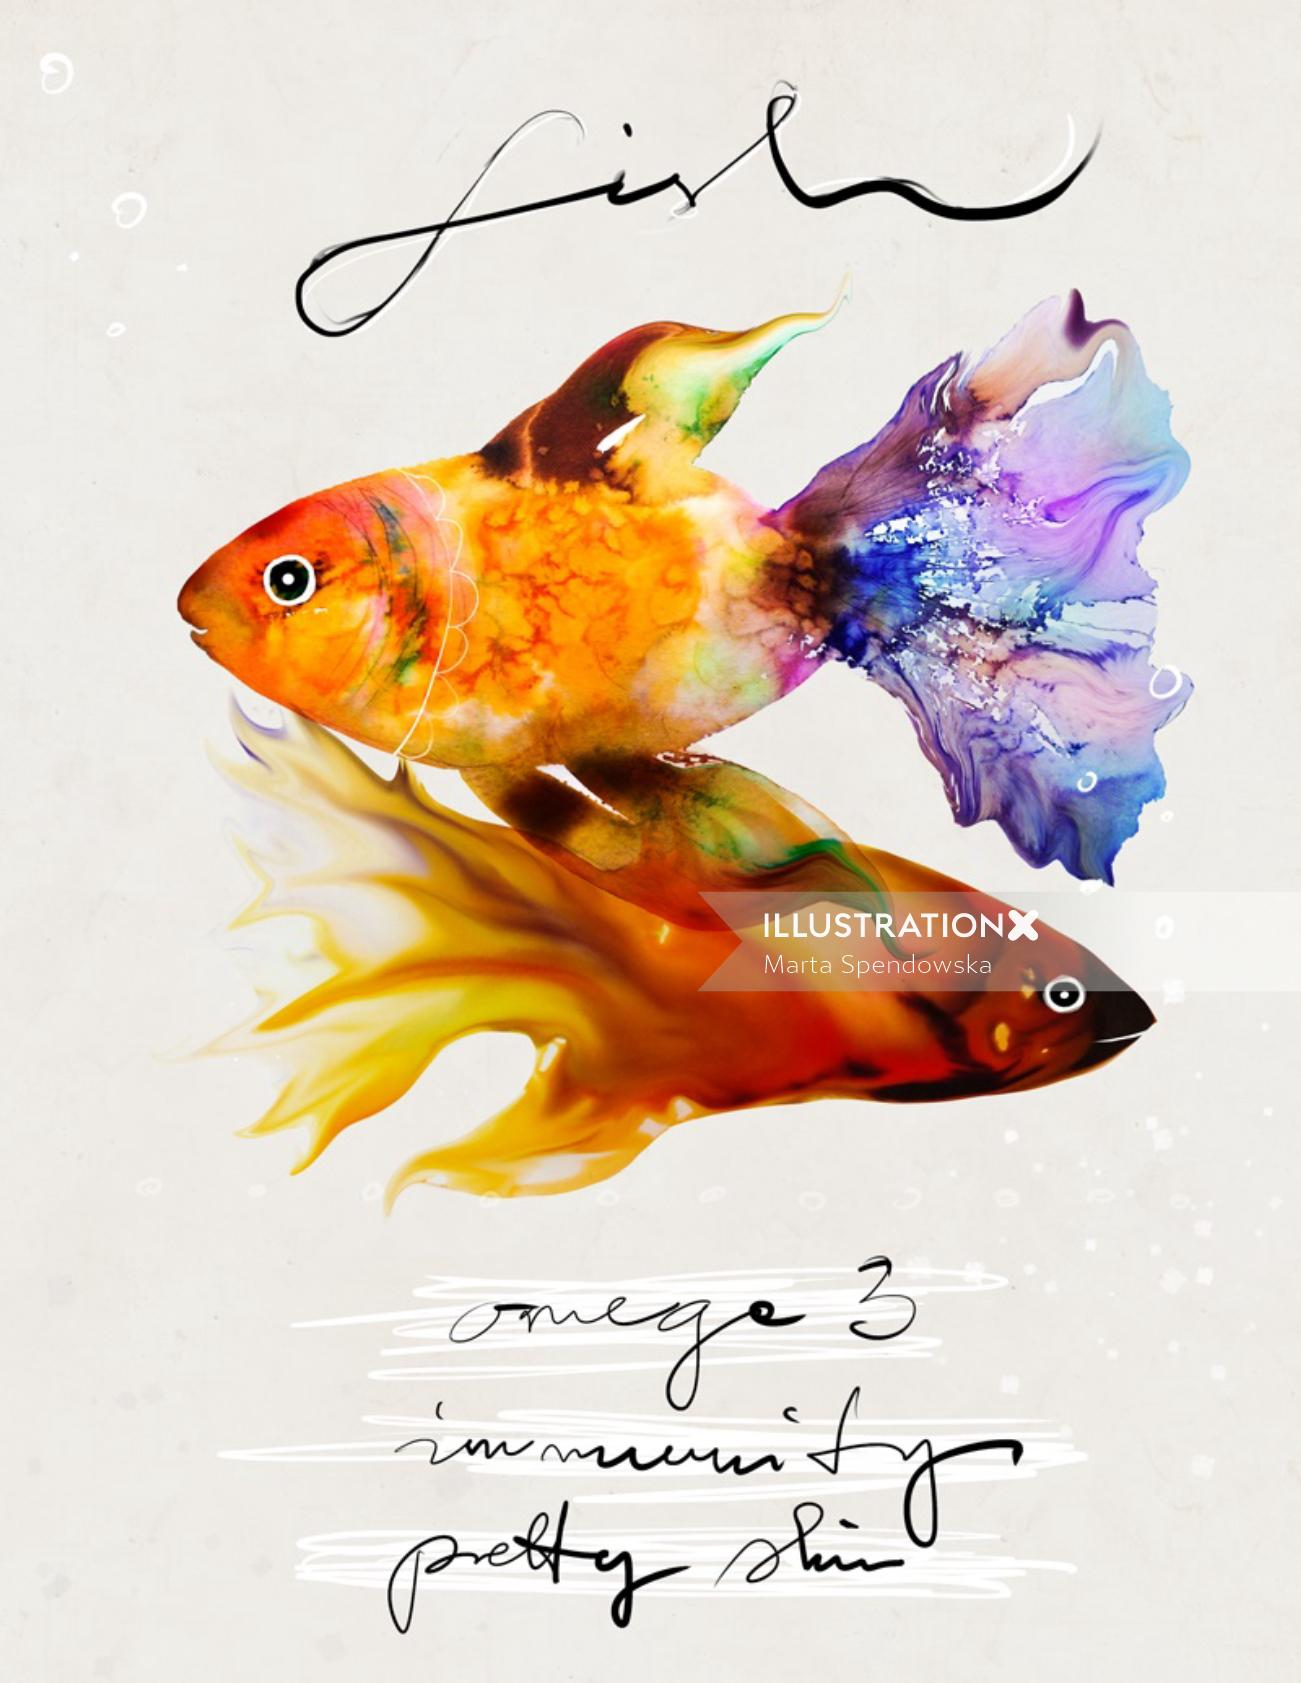 Aquarium fishes illustration by Marta Spendowska